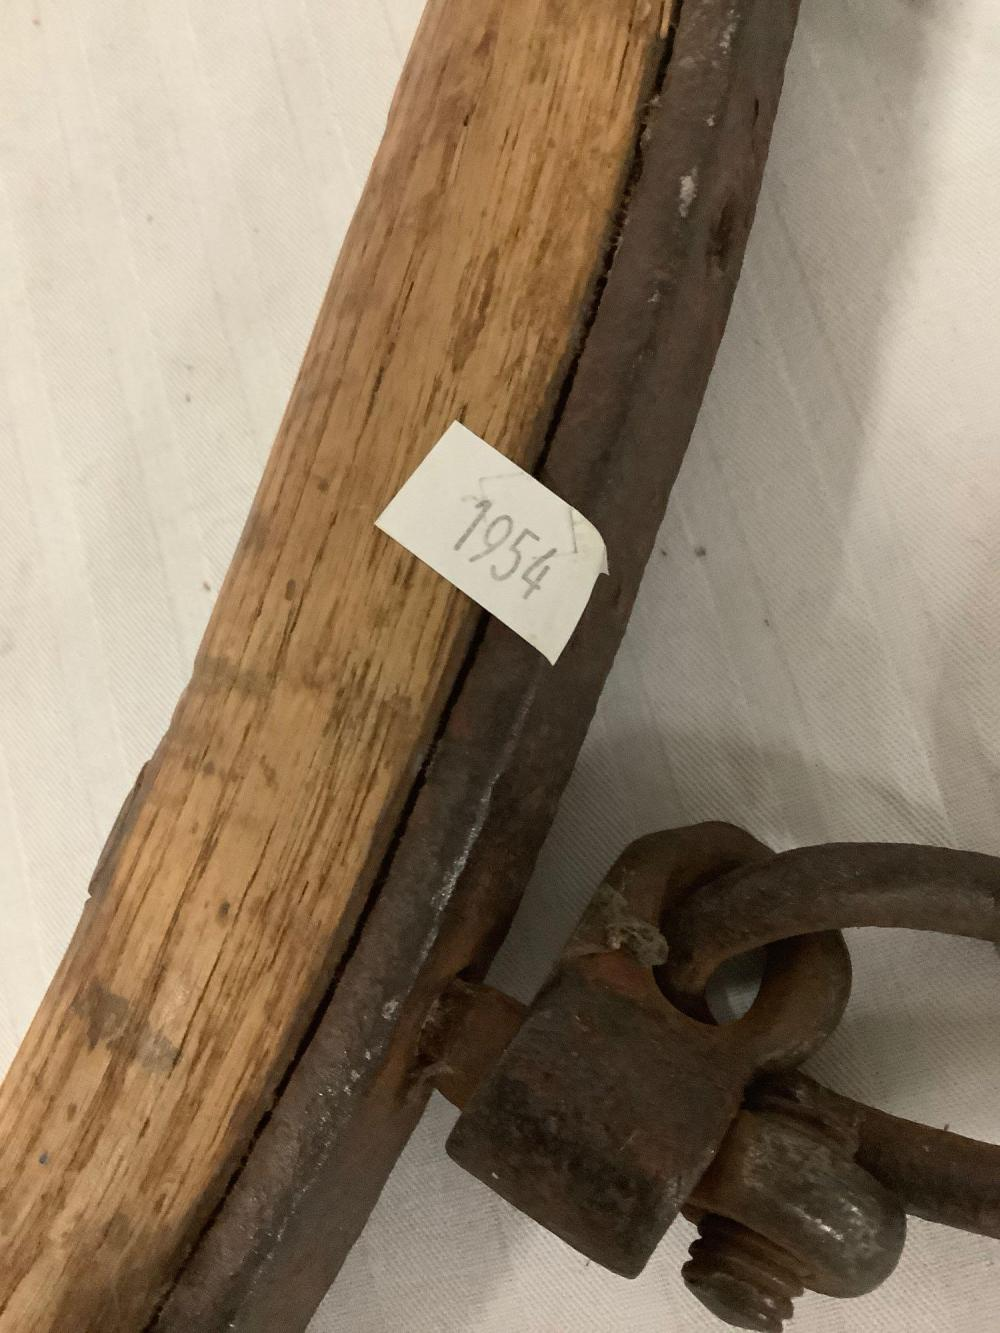 Lot 399: Antique wood and metal livestock harness piece